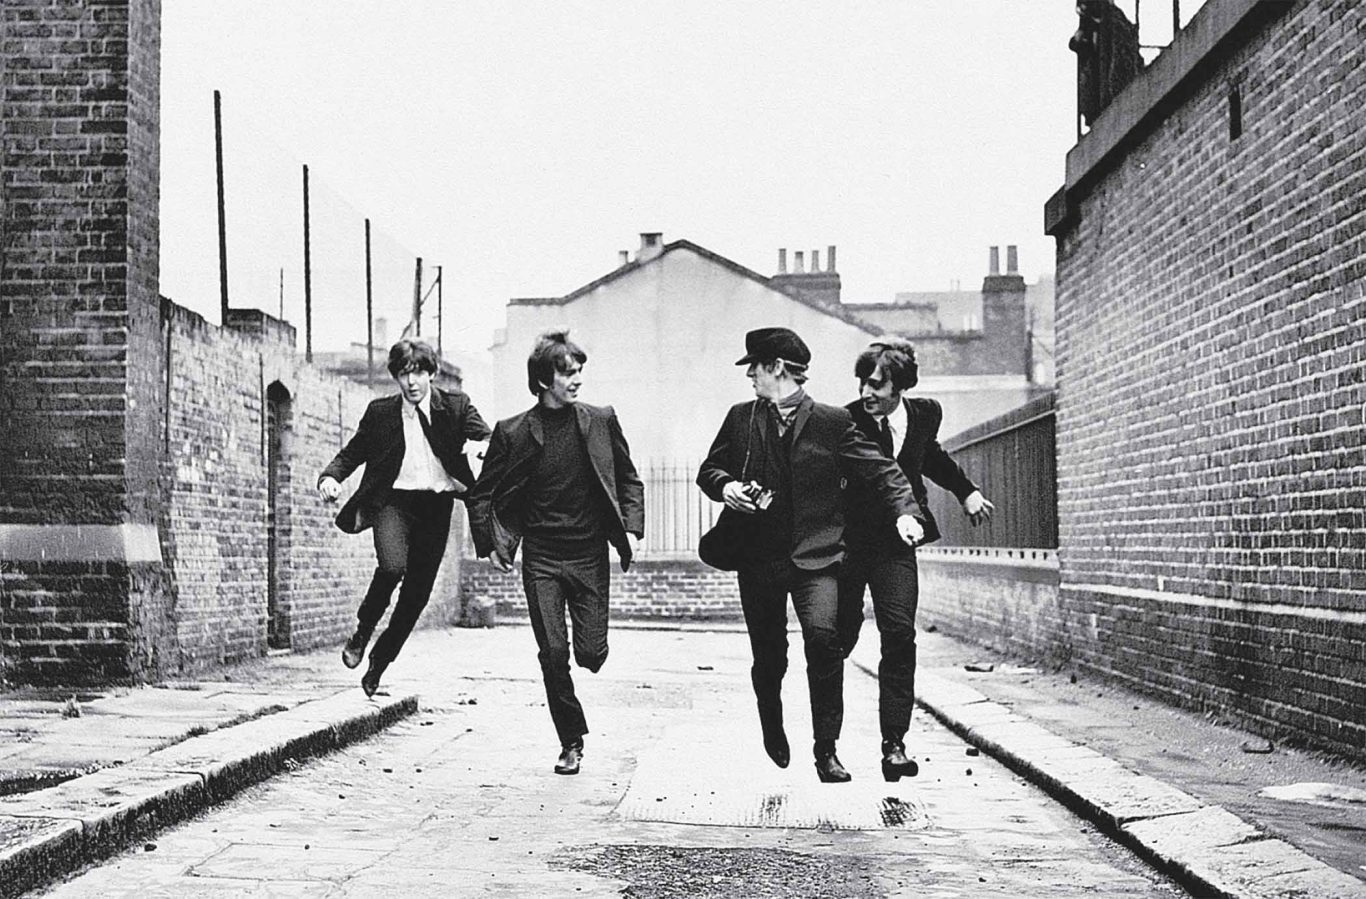 Stephanie Zacharek's 2014 reviews A HARD DAY'S NIGHT in the Village Voice